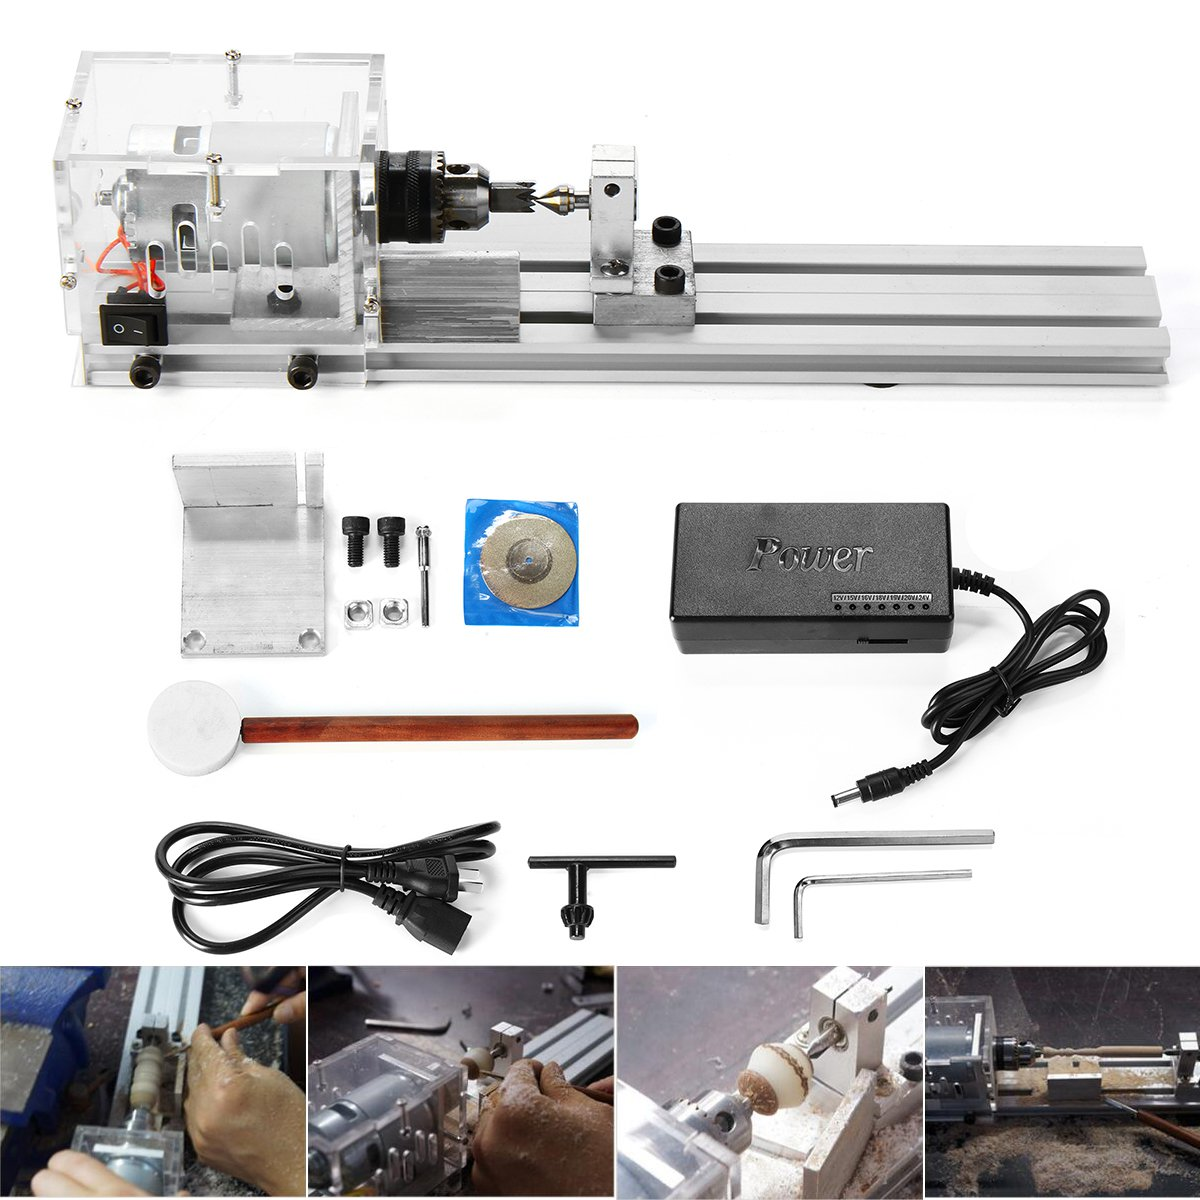 24V 80W Mini Lathe Beads Machine DIY Woodworking Lathe Miniature Grinding Polishing Standard Set